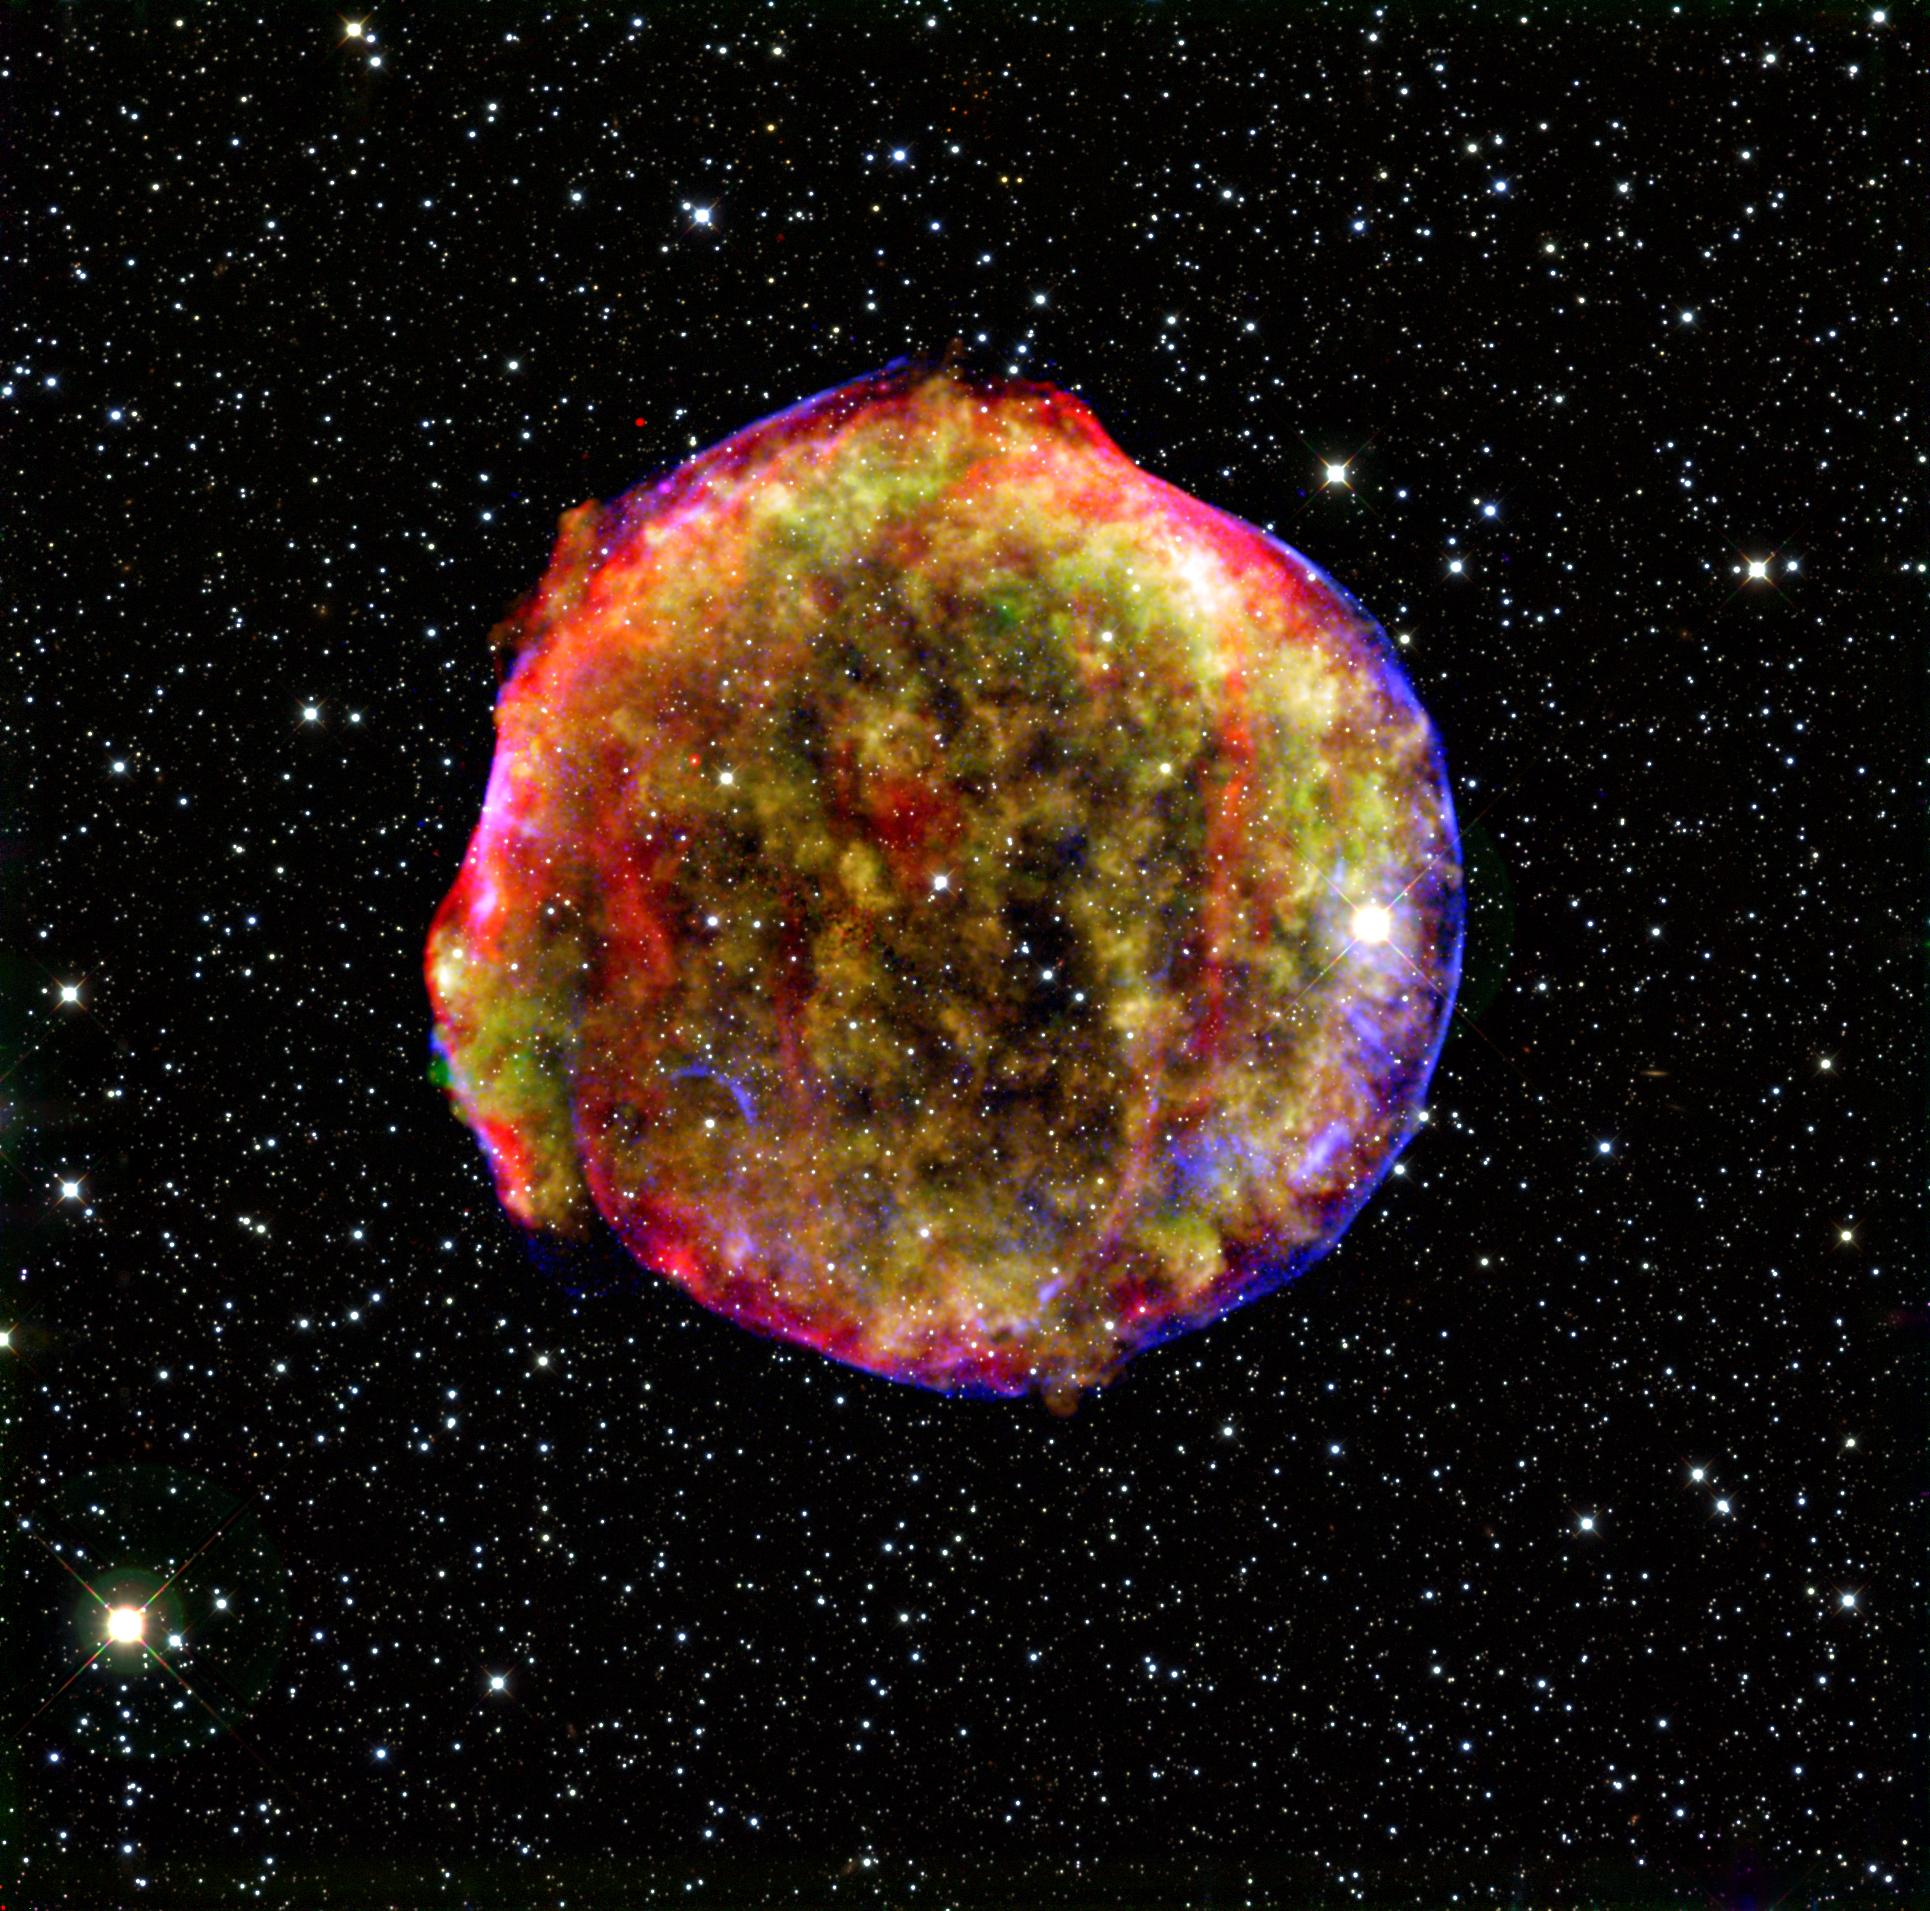 Multiwavelength composite image of the remnant of Tycho's supernova, SN 1572. Photo credit: NASA/MPIA/Calar Alto Observatory, Oliver Krause et al.